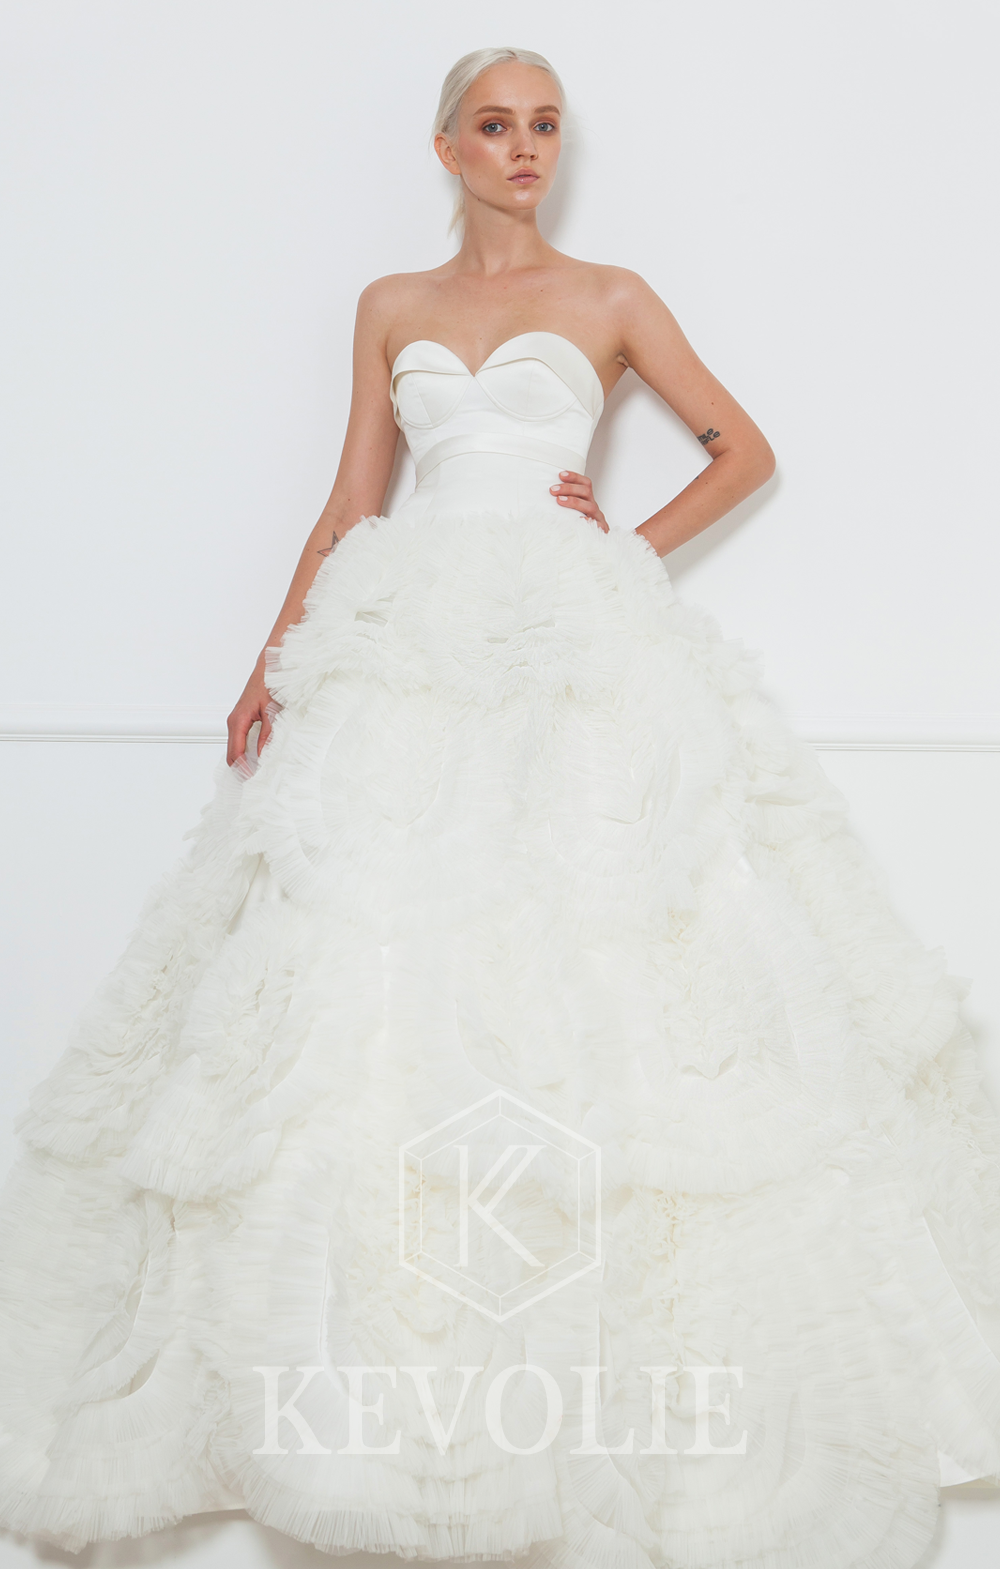 BRIDAL COLLECTION 2015-LOOK 5